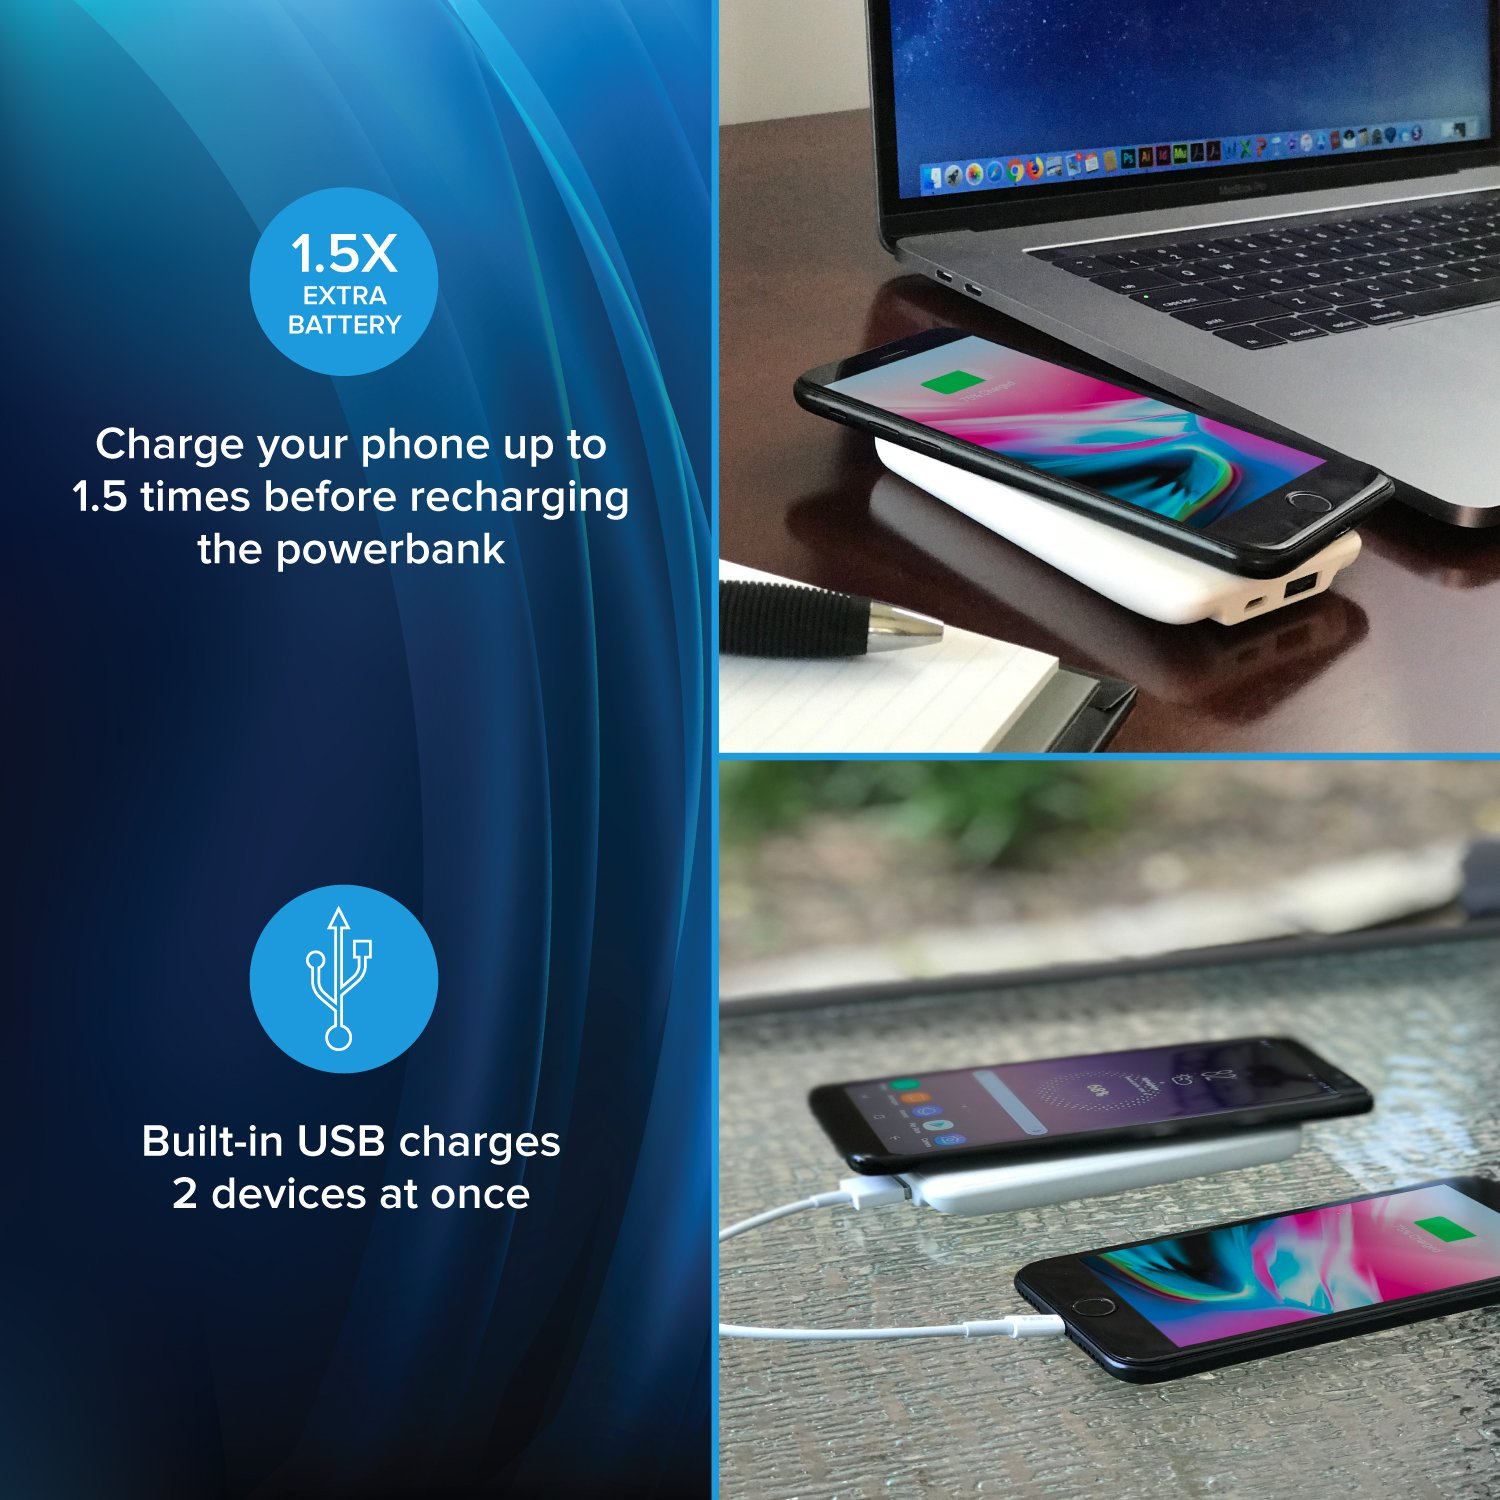 myCharge Wireless Charger Portable Charger Power Bank 5W/1A/3000mAh Qi Certified for Apple (iPhone XS, XS Max, XR, X, 8, 8 Plus) Android (Samsung Galaxy S8, S8+, Note 8, S7, S7 Edge, S6, S6 Edge)